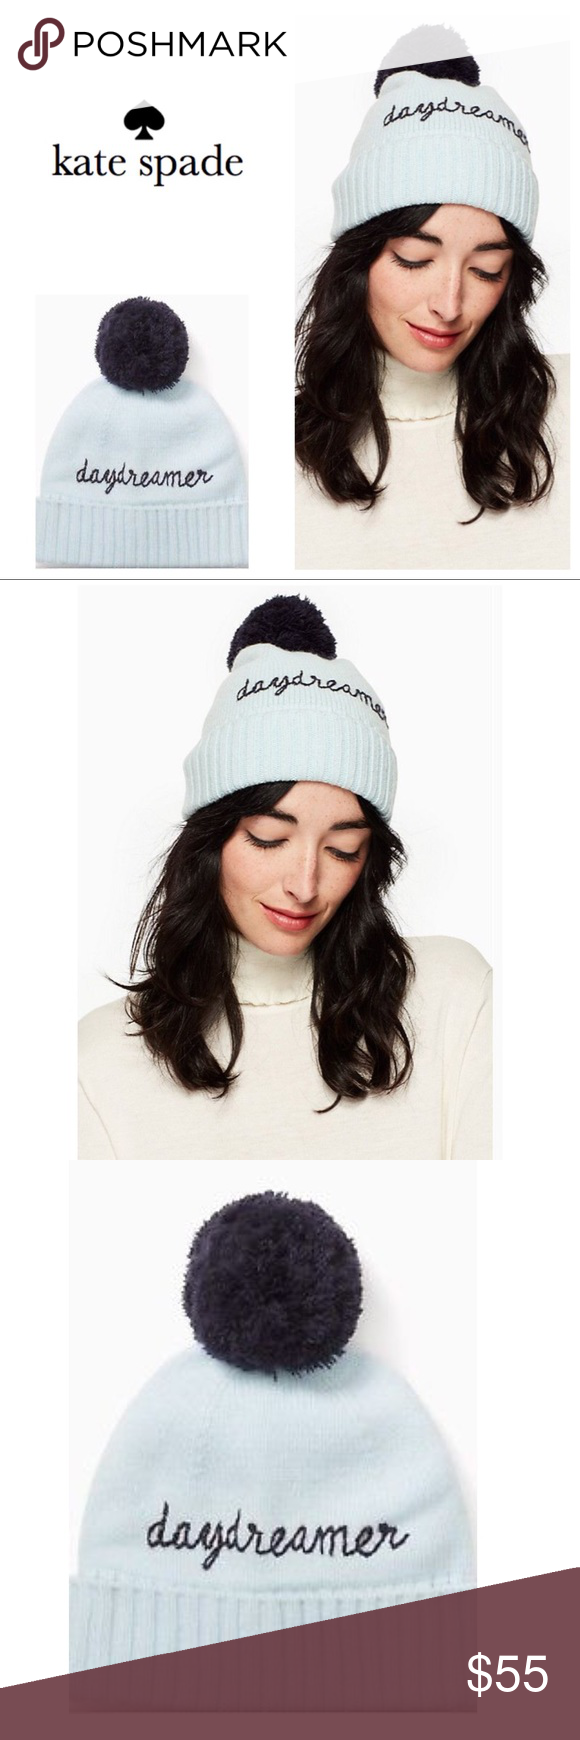 51b3eaae9af67 Kate Spade Daydreamer Pom Pom Beanie A charming Kate Spade New York ice  blue beanie with stitched  Daydreamer  lettering and a contrast navy pom pom.  kate ...